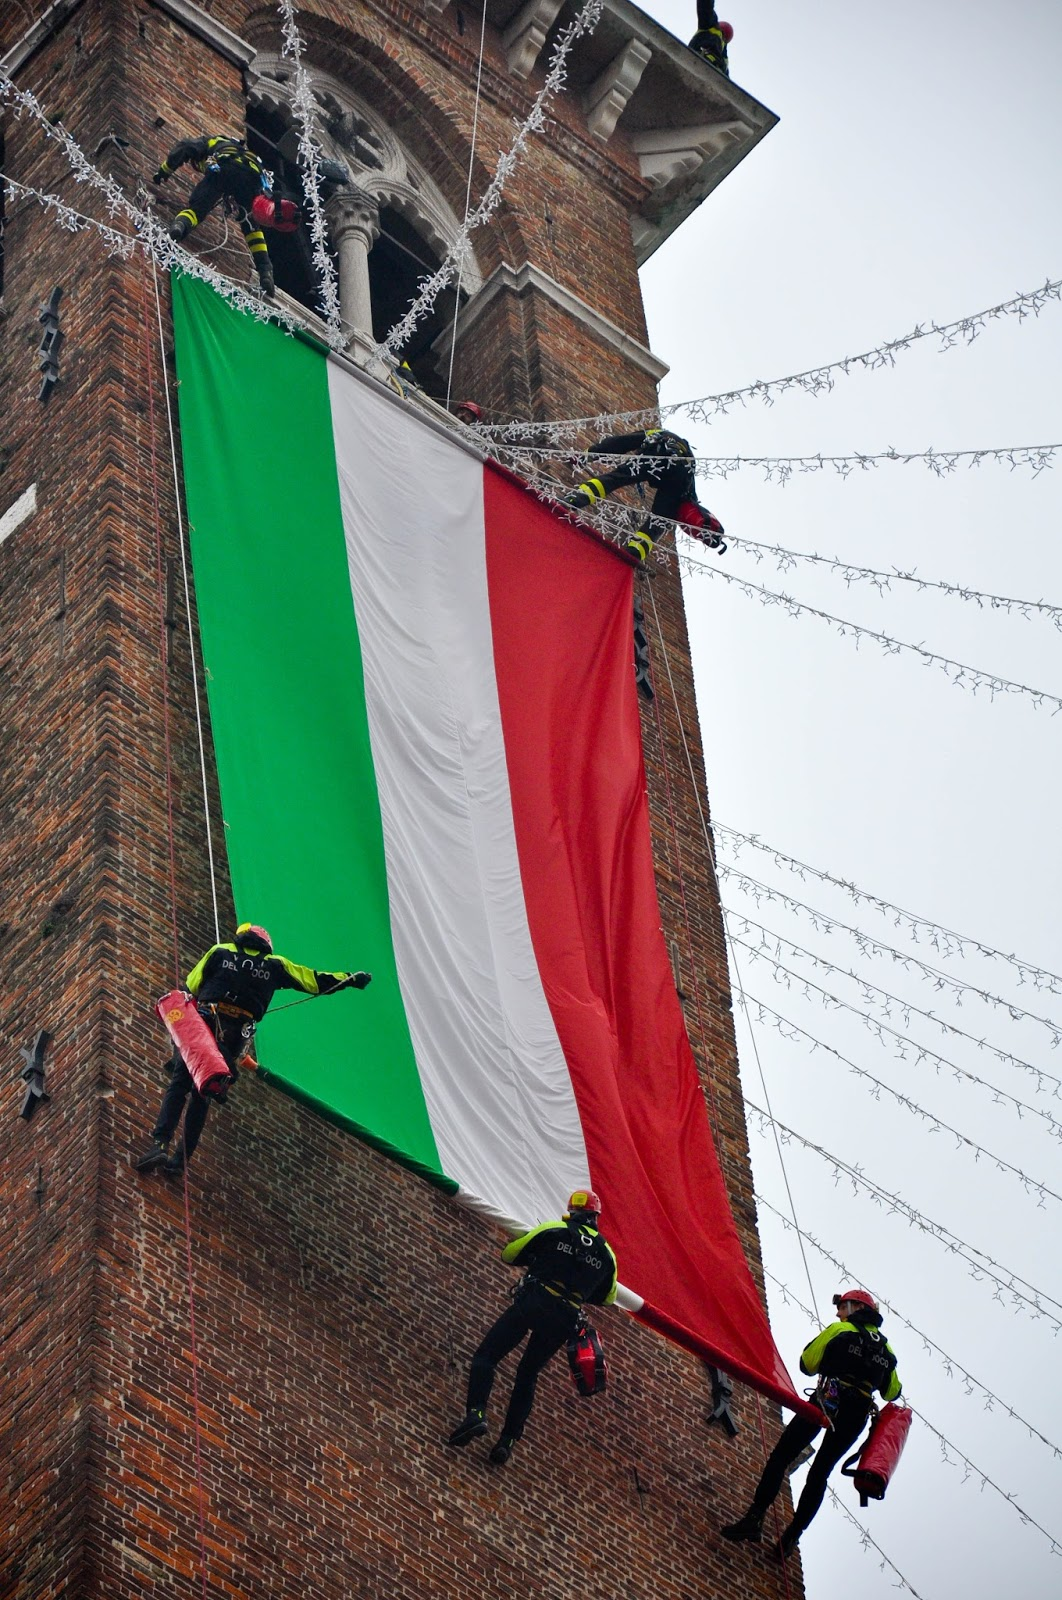 Firefighters unfurling the Italian flag down the clock tower of Palladio's Basilica, Saint Barbara celebration, Vicenza, Veneto, Italy